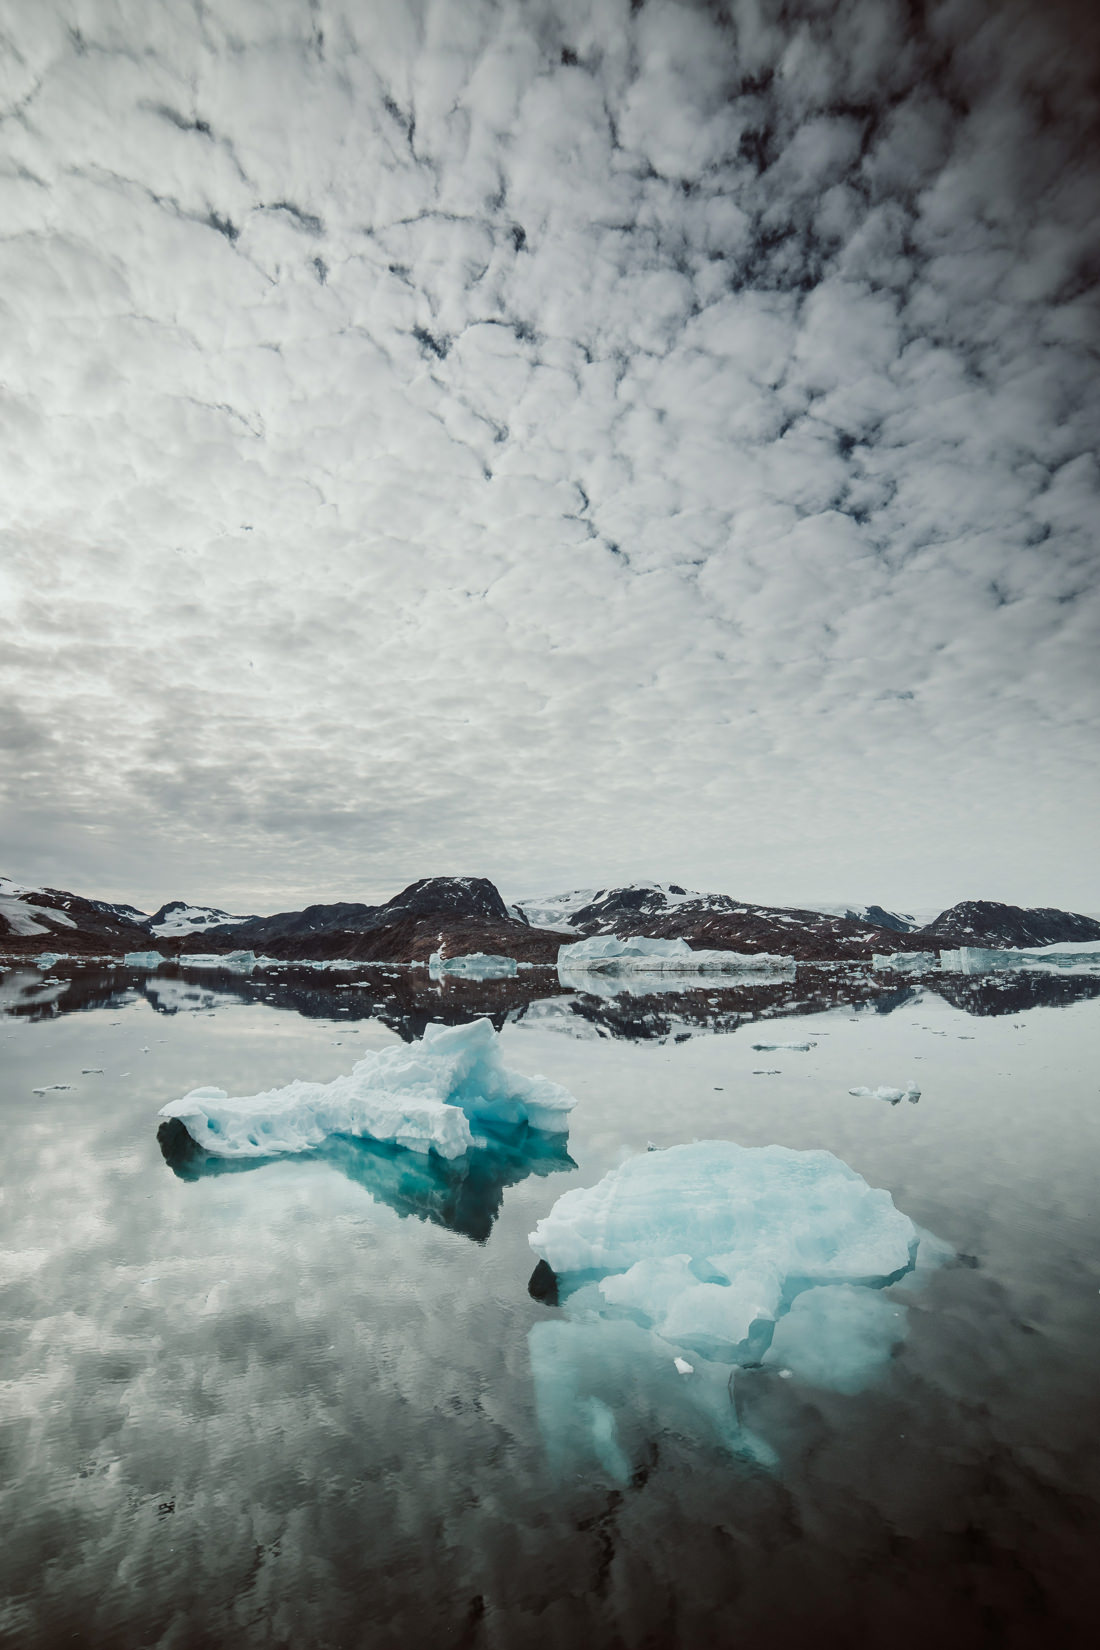 048 greenland arctic sailing expedition - hochzeitsfotograf